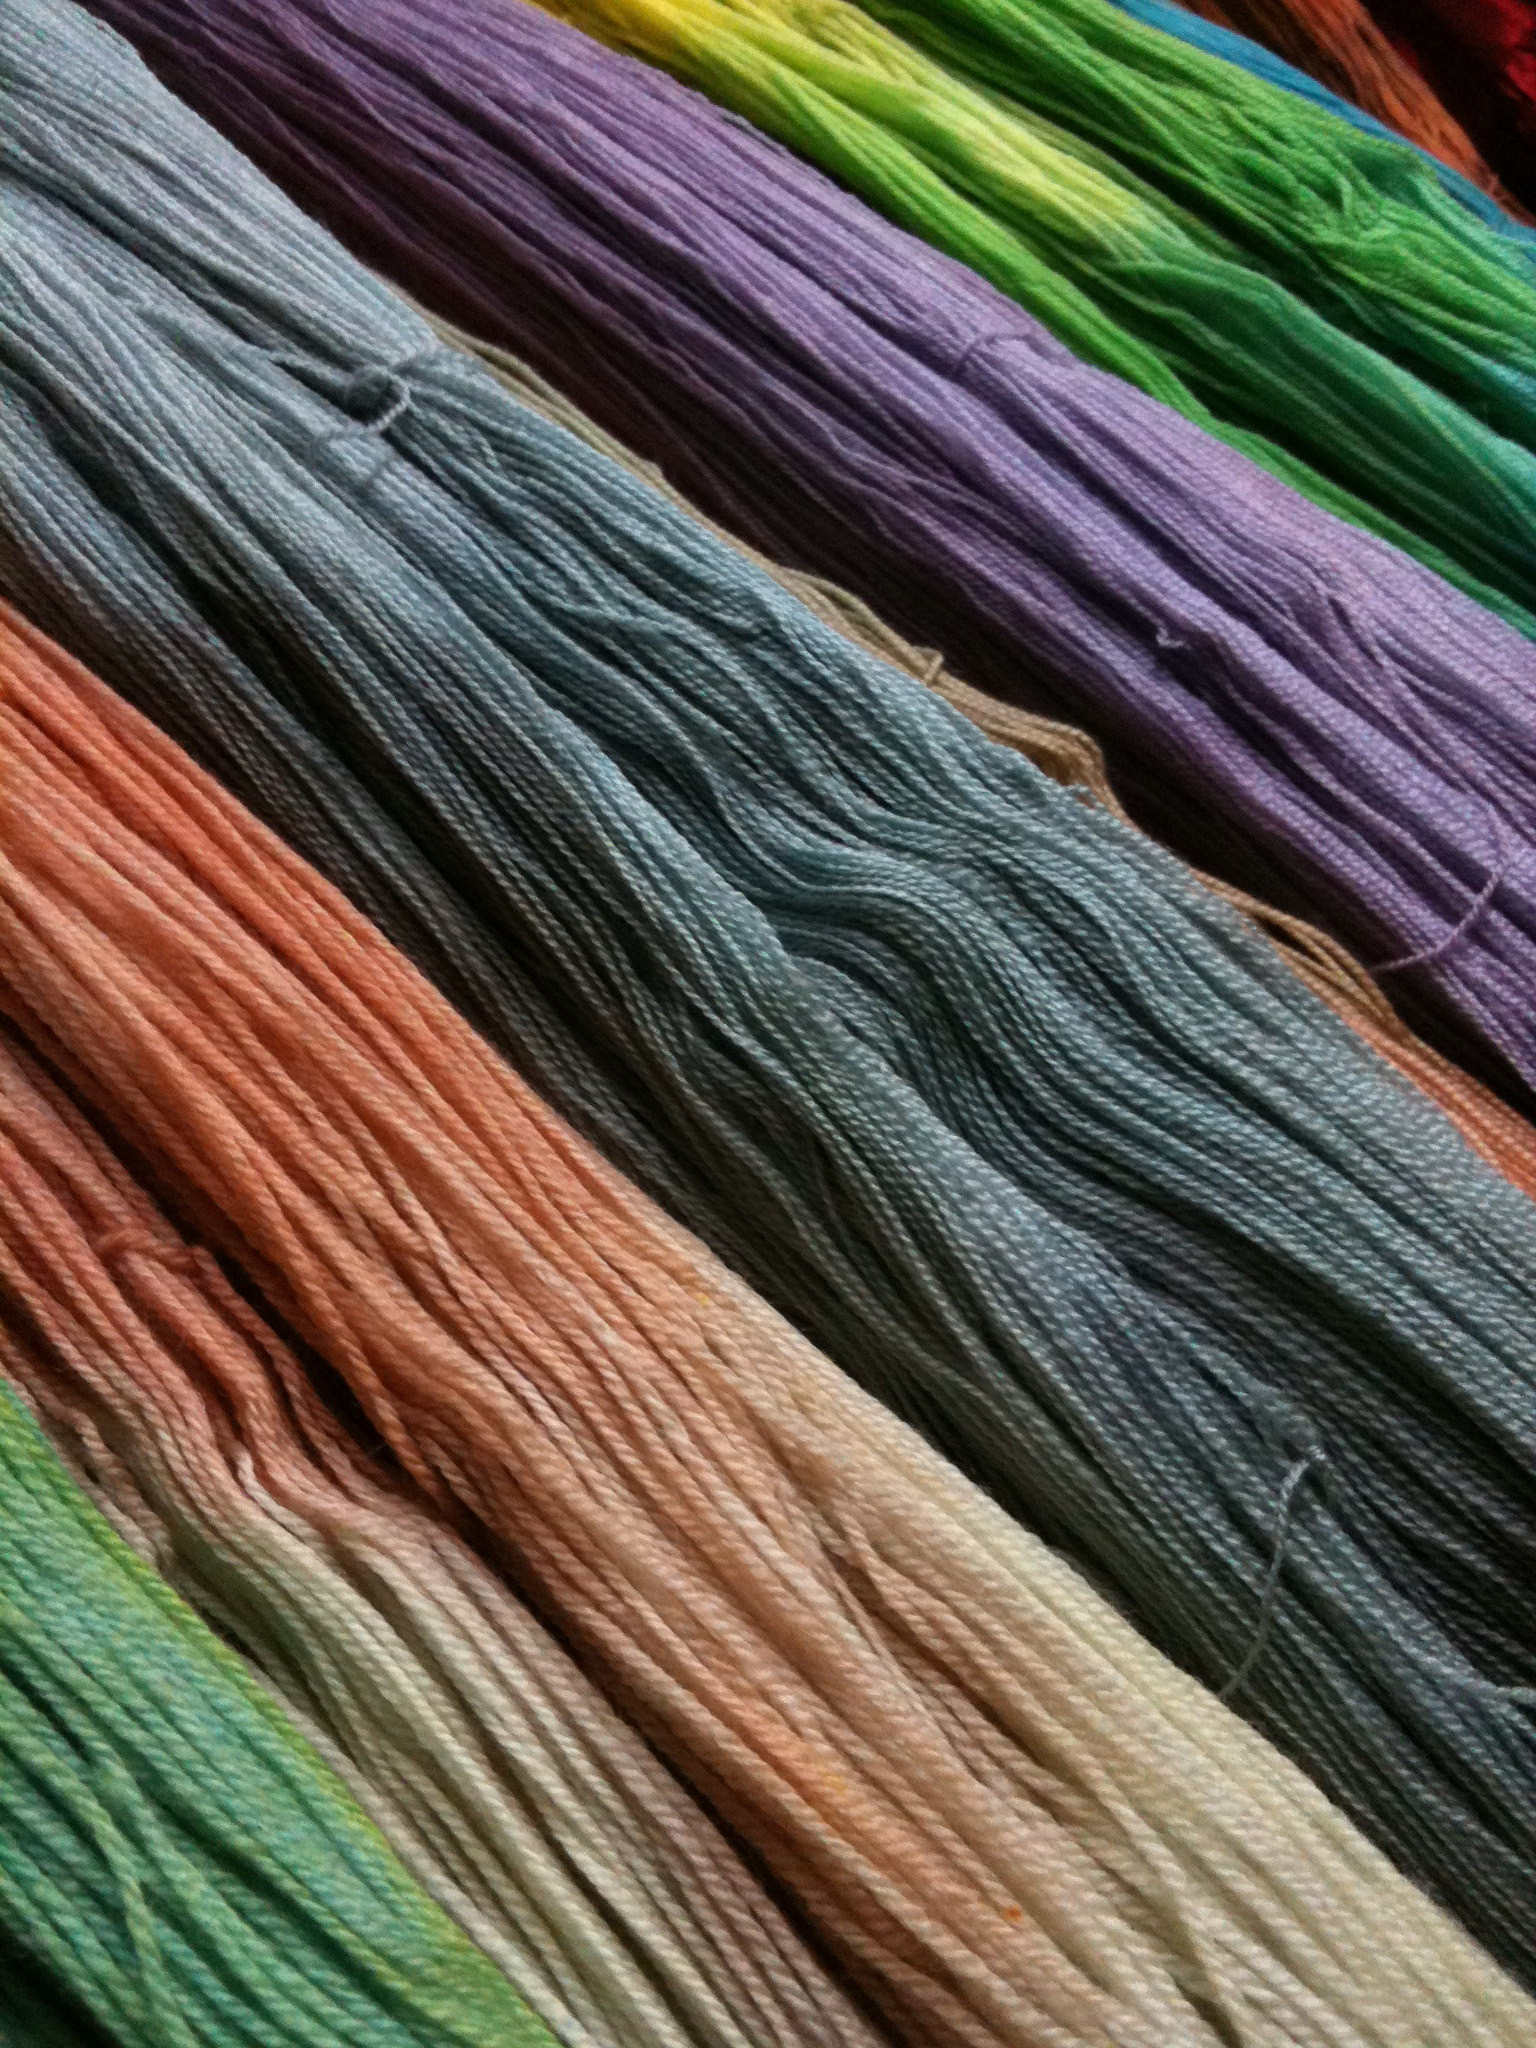 yarn, hand-dyed, handdyed, indie dyer, knitting, crochet